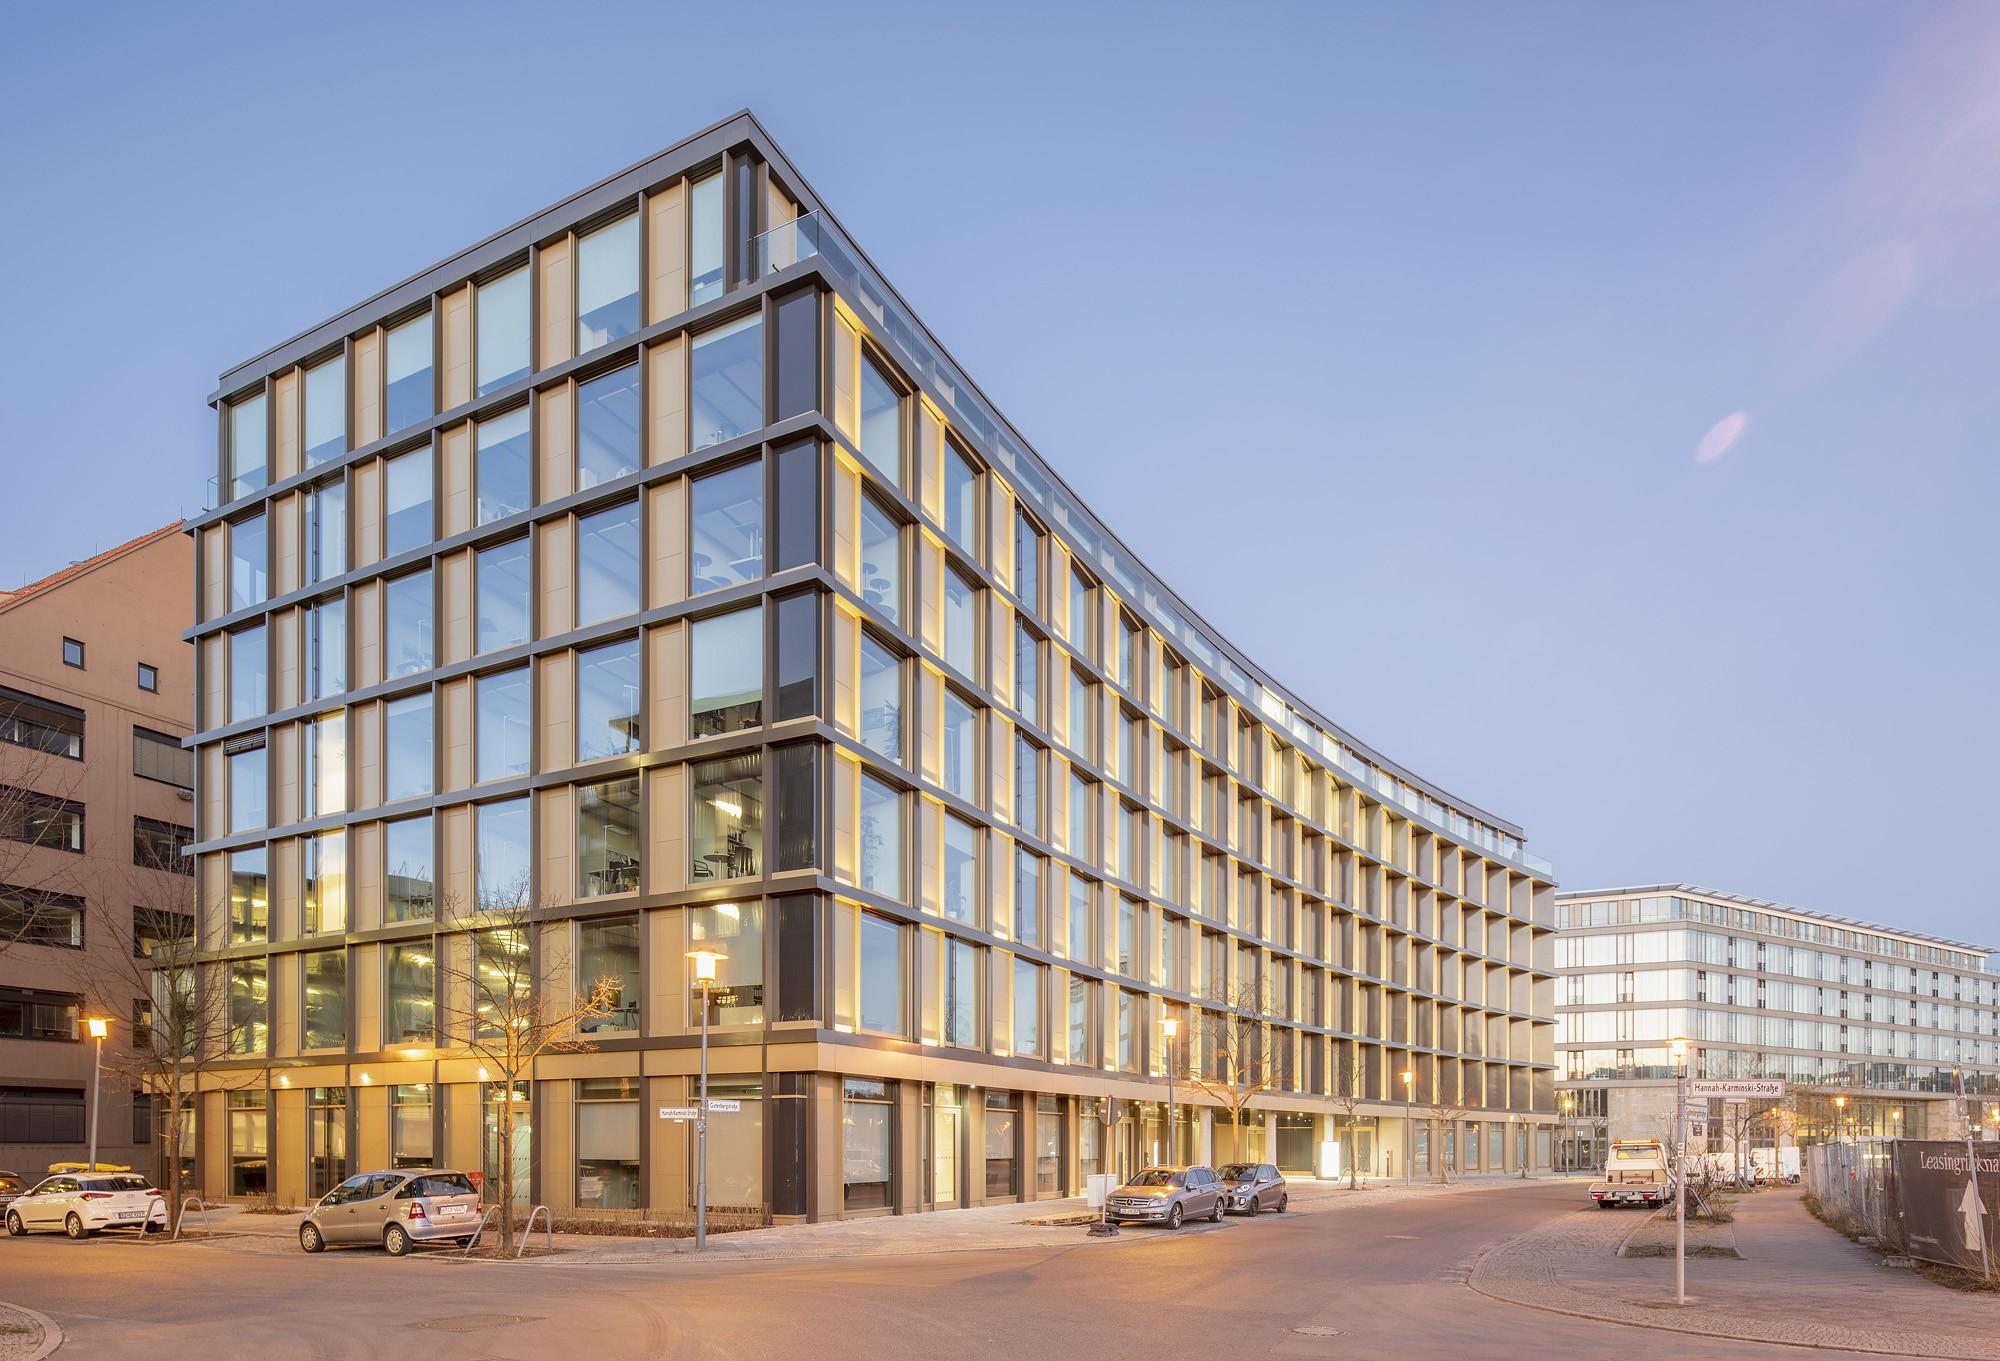 Salzufer Berlin by Rothweiler + Färber Architects